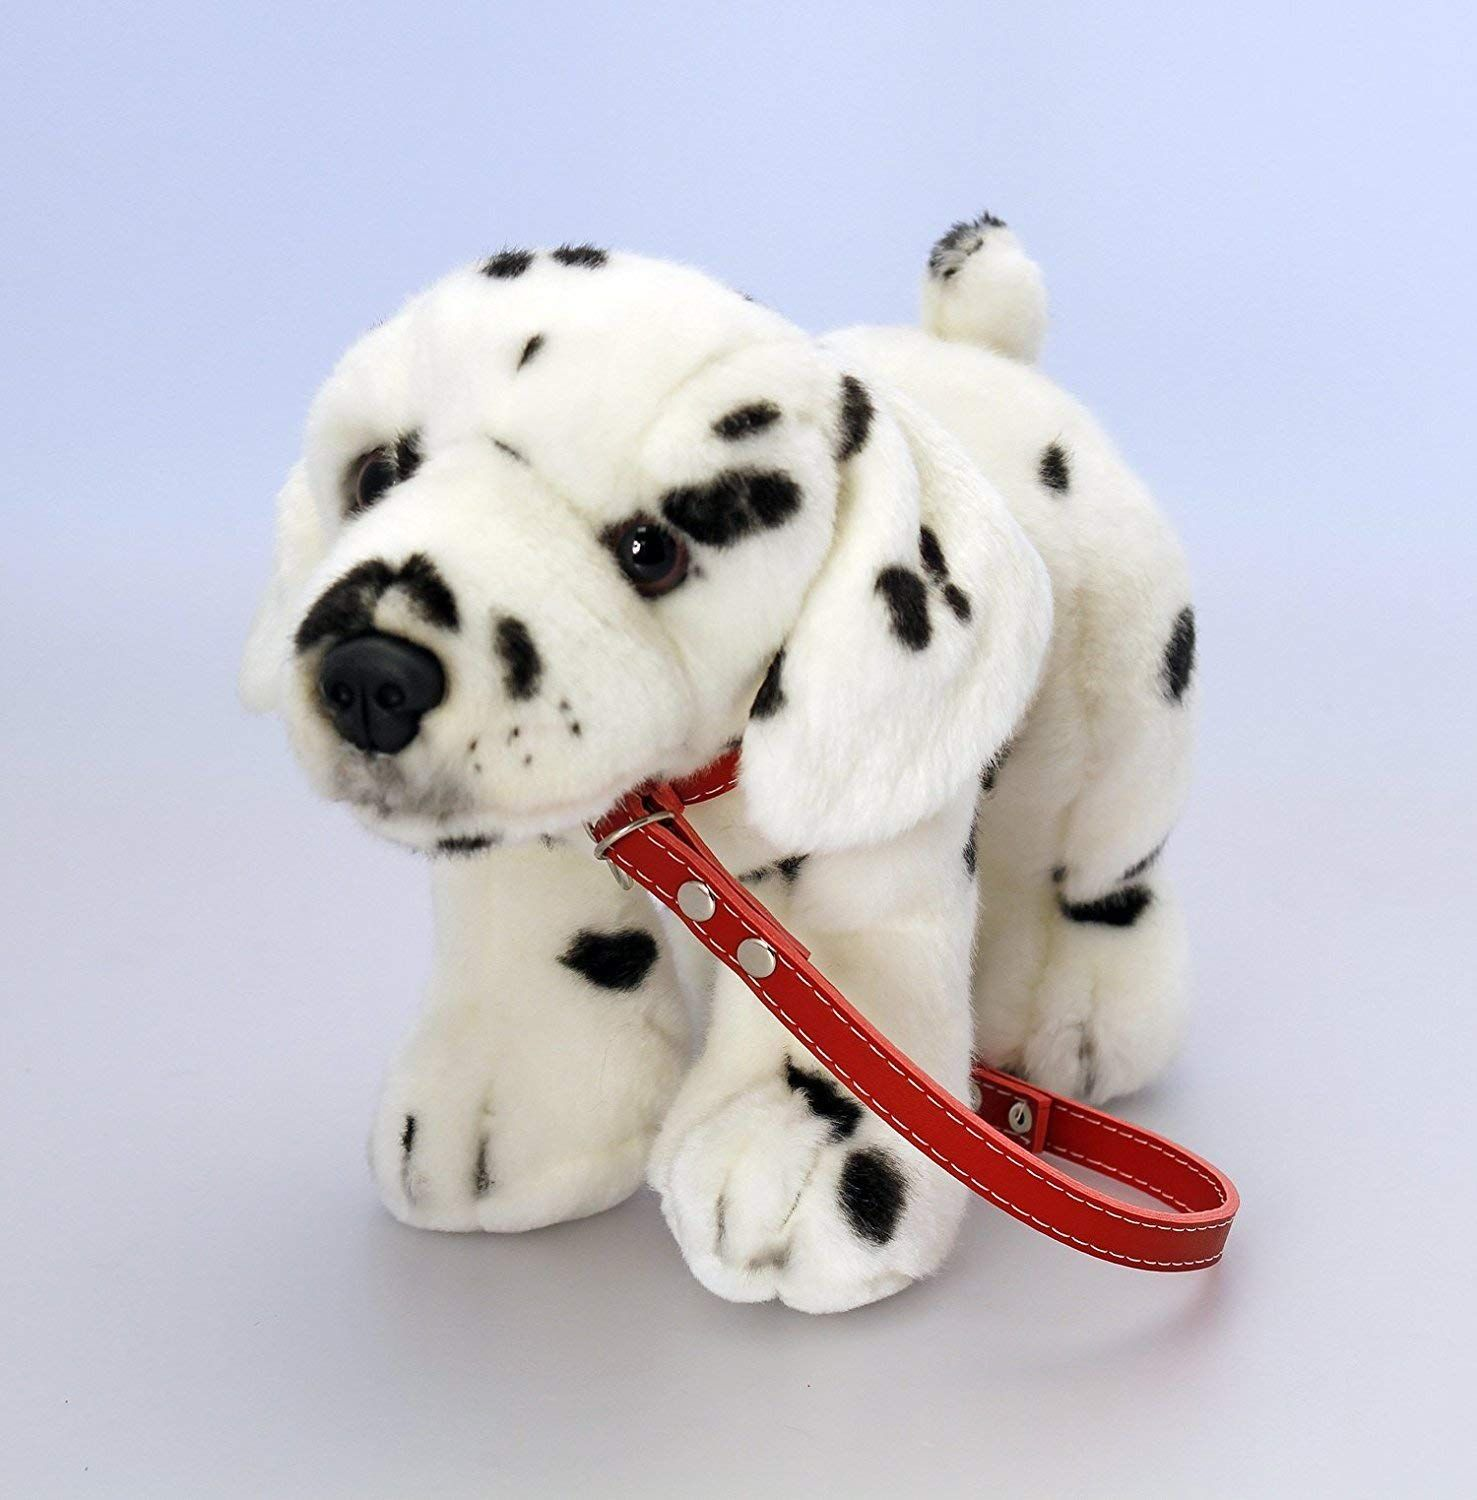 30cm Soft Toy Dalmatian On Red Lead By Keel Toys Amazon Co Uk